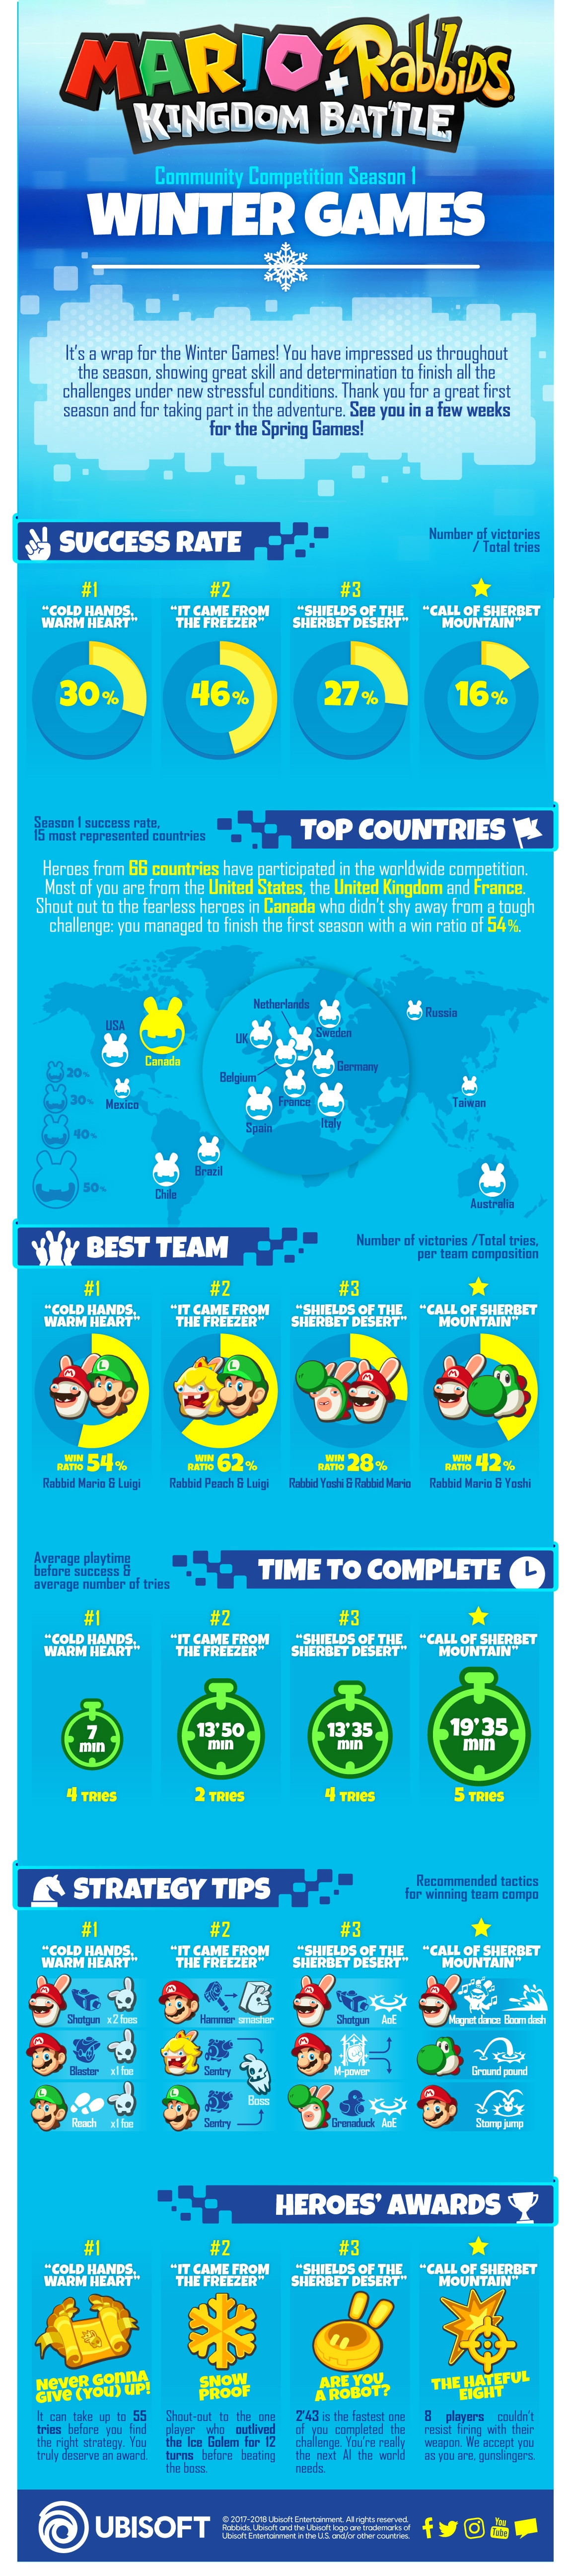 Winter Games Infographic